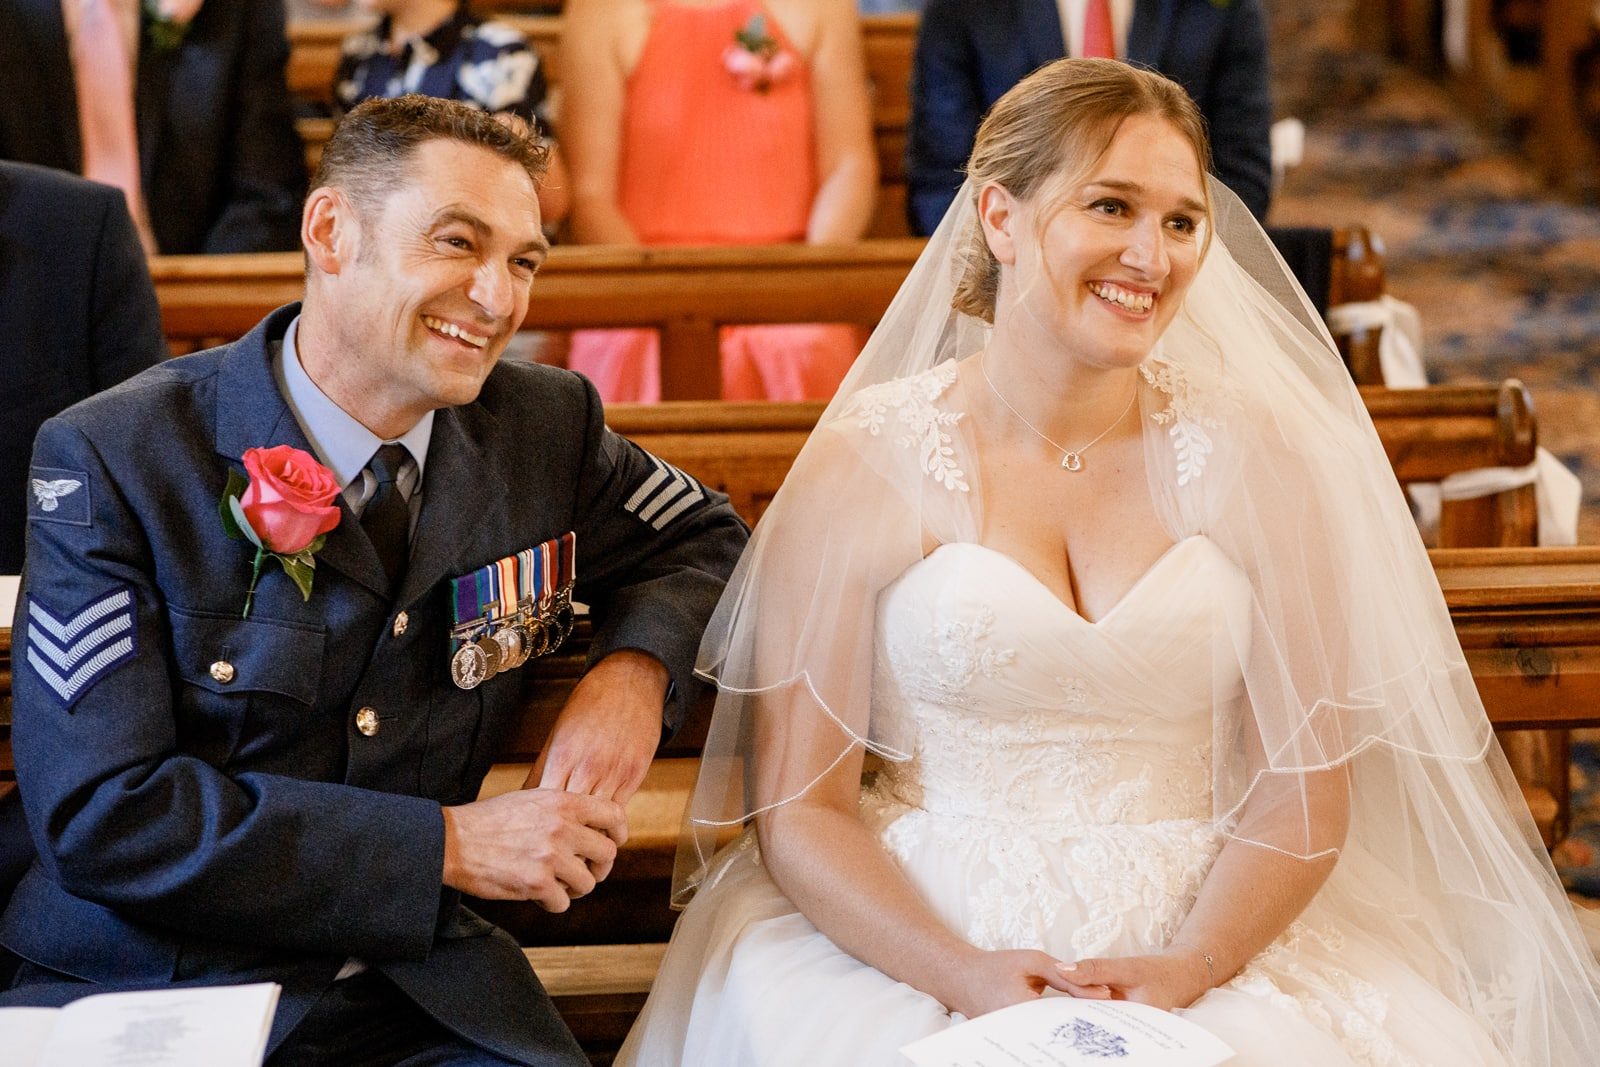 bride and groom smiling in church